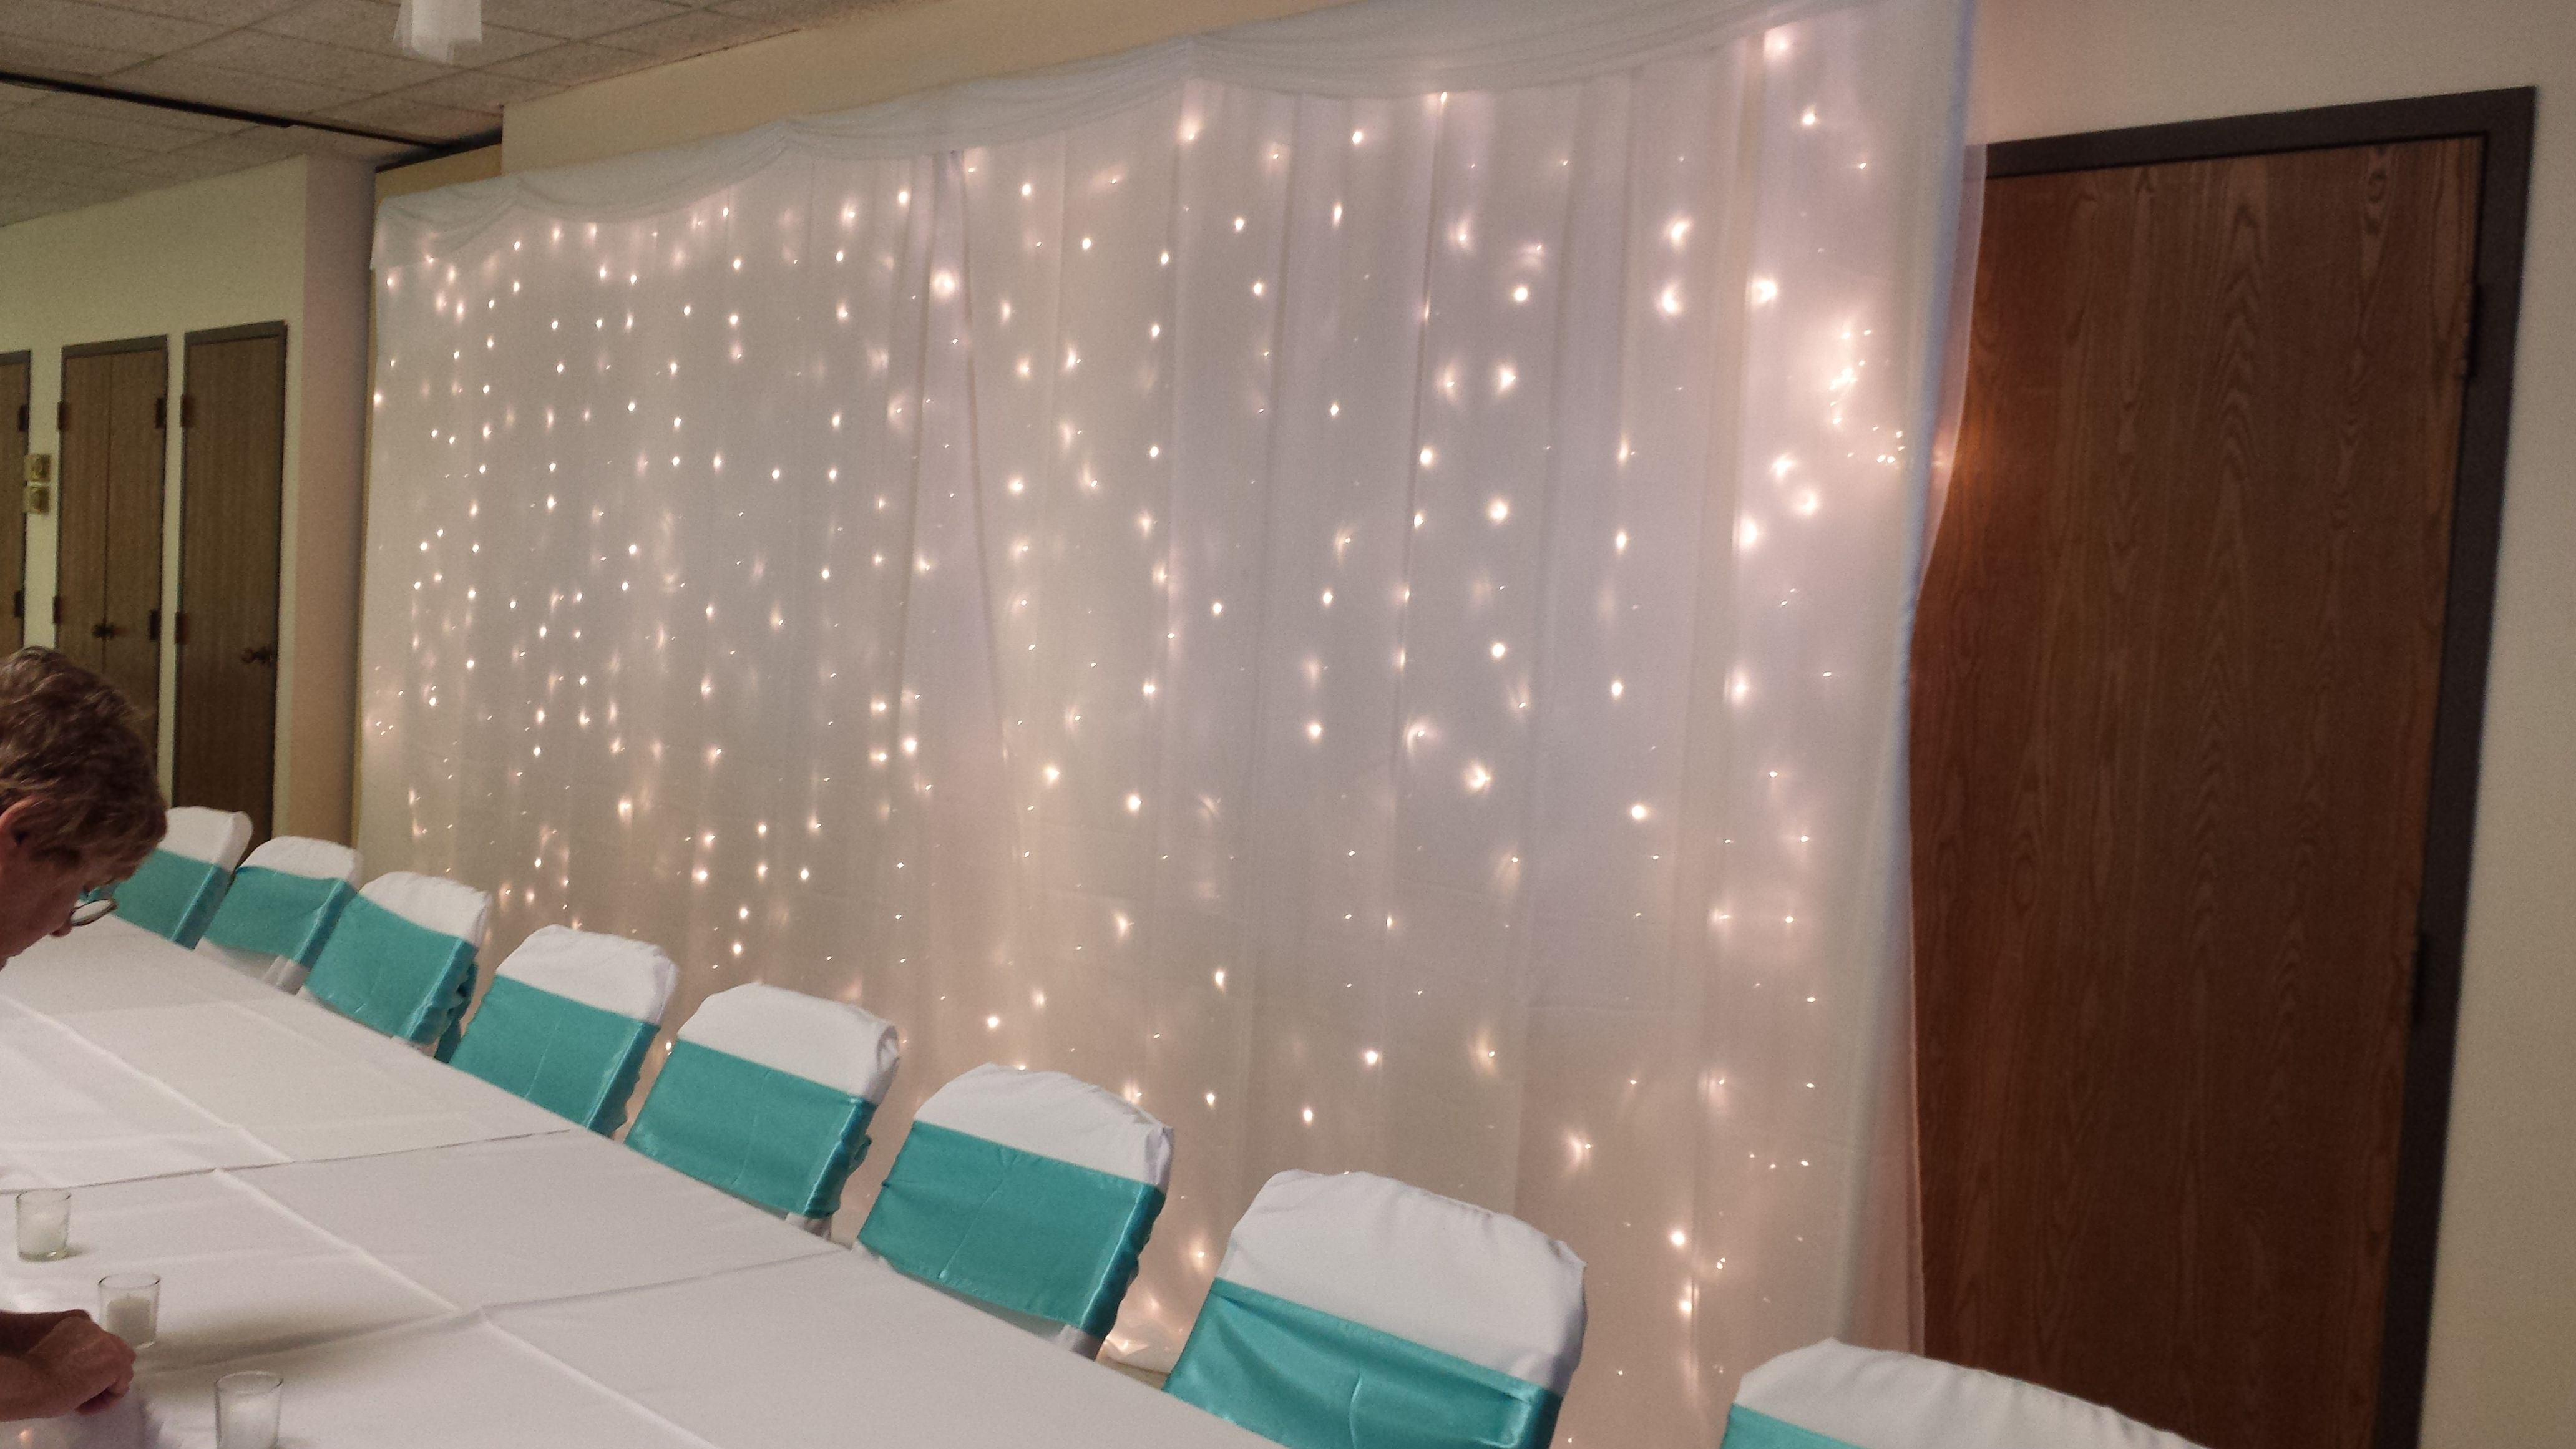 Fairy Light Backdrop With White Sheer Curtains White Sheer Curtains Light Backdrop Fairy Light Backdrops